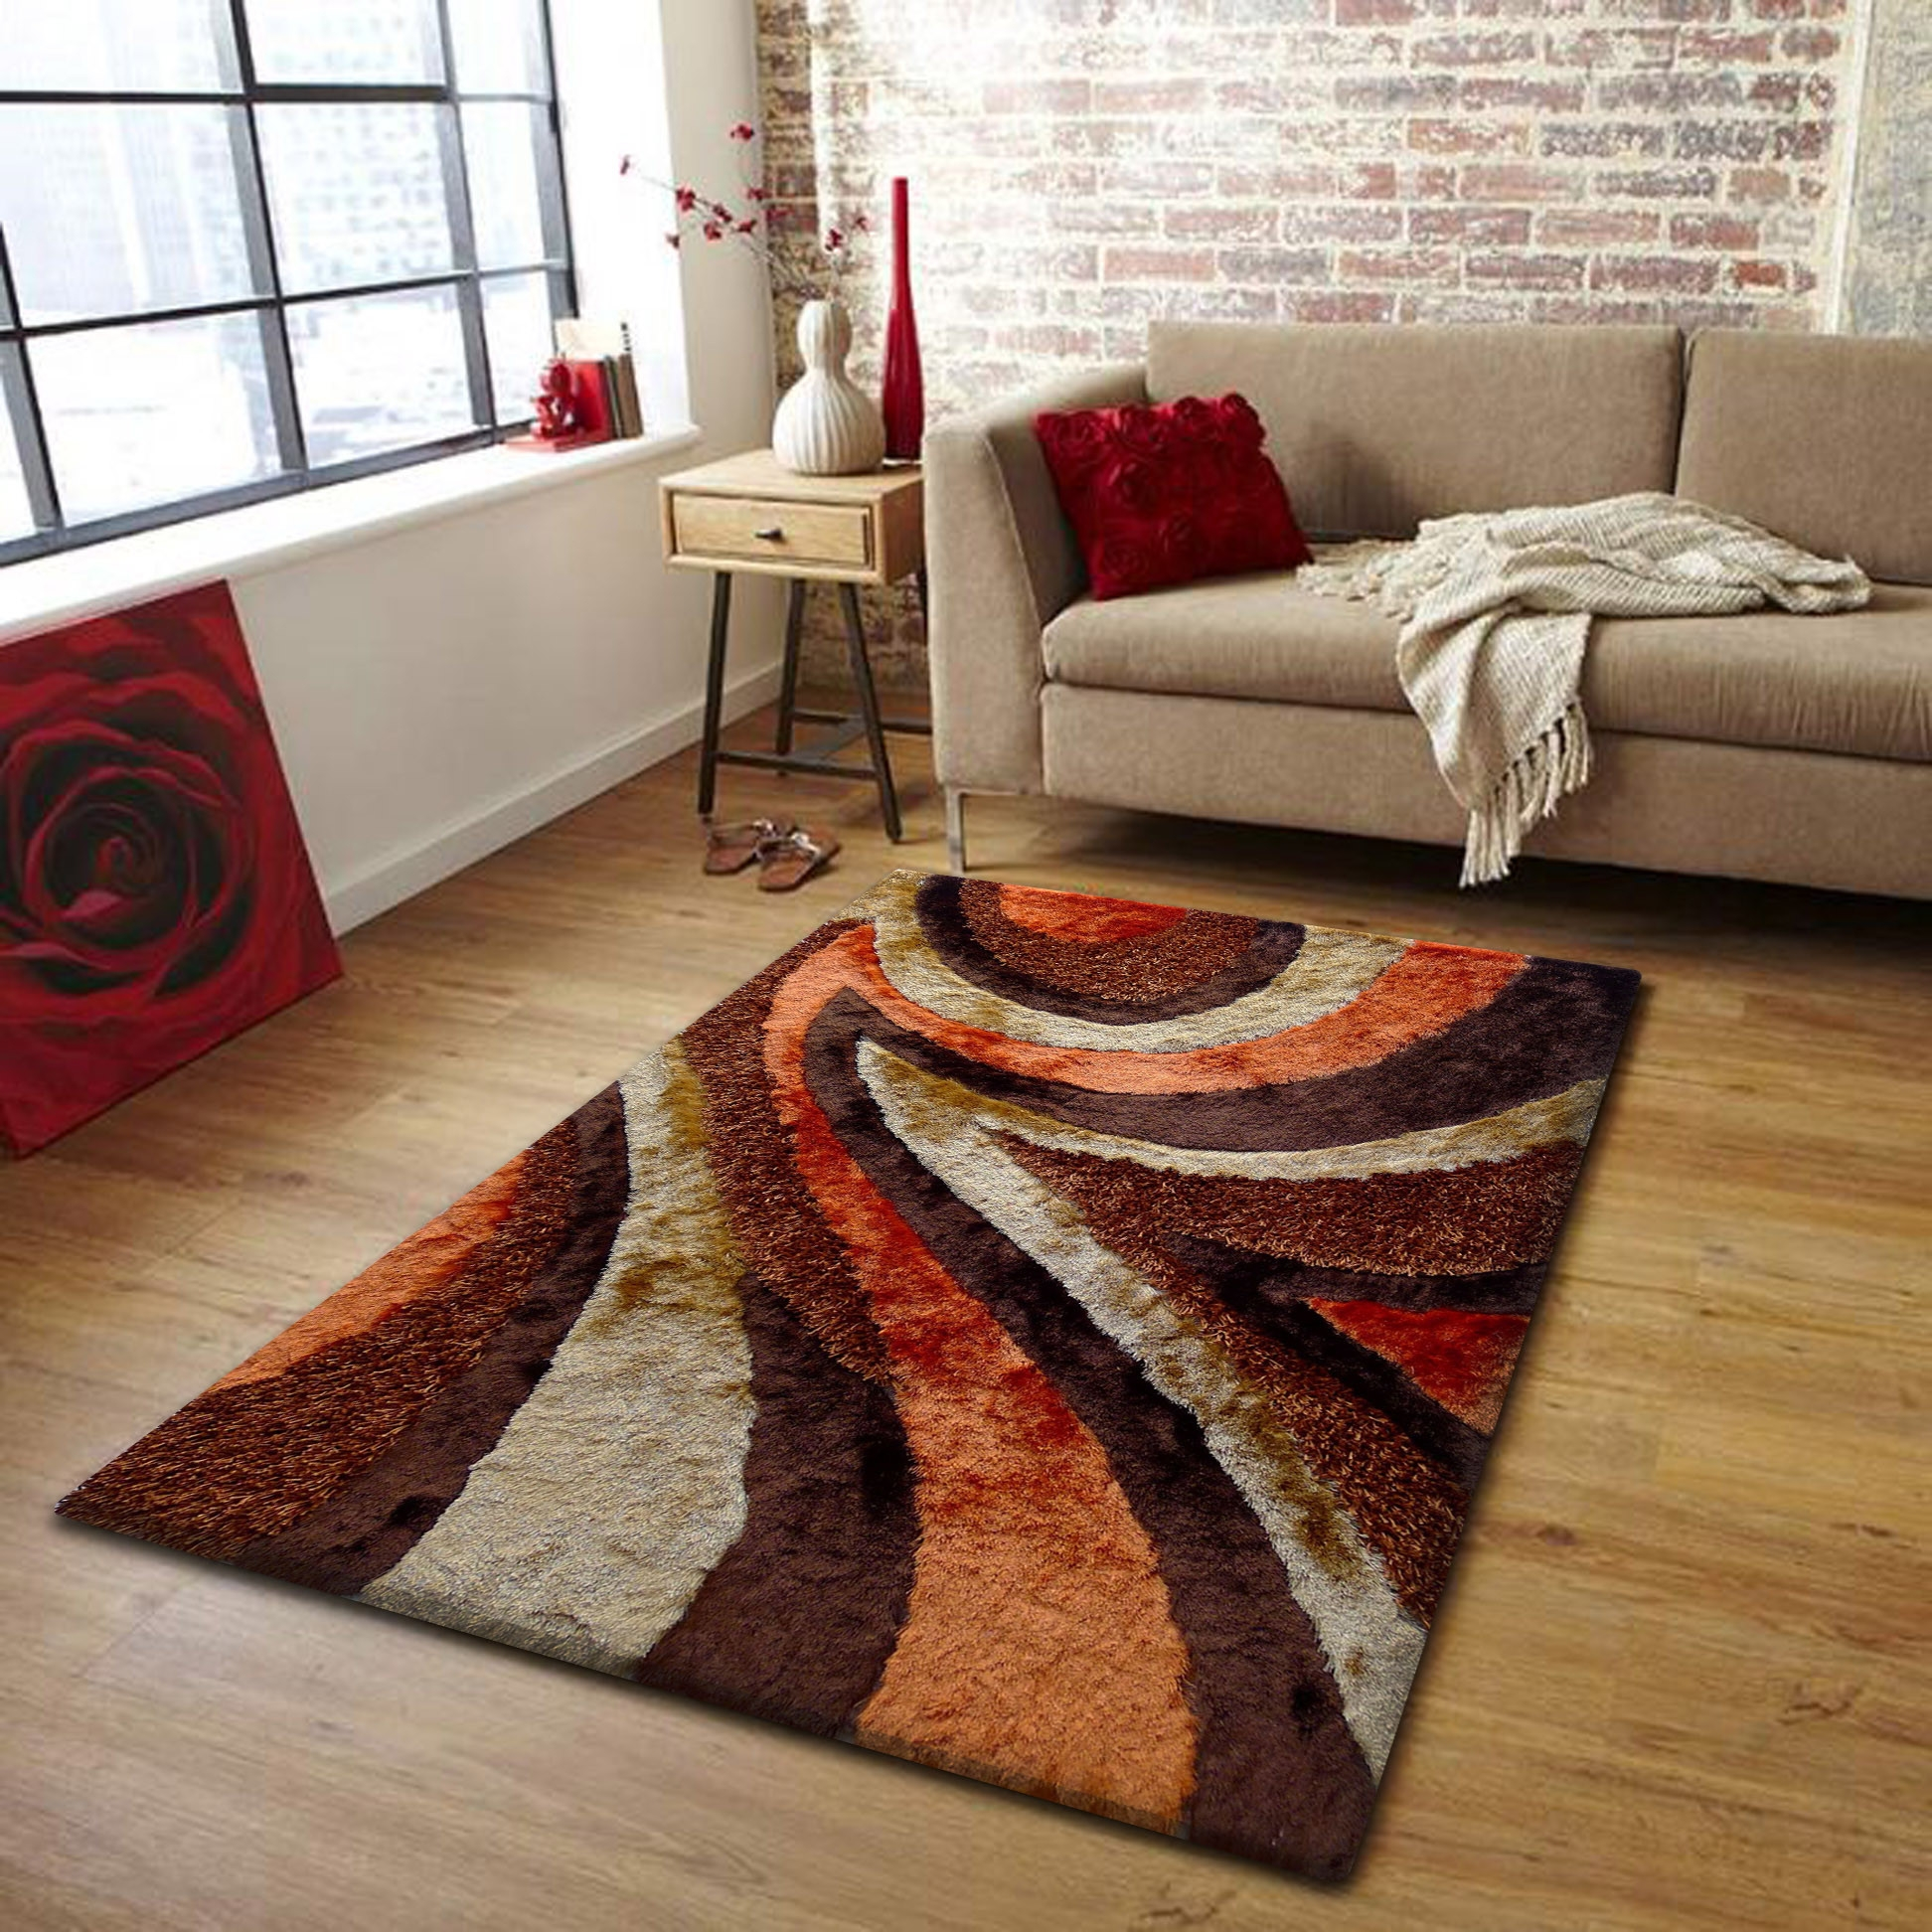 Orange And Brown Rugs Cievi Home Pertaining To Brown Orange Rugs (Image 12 of 15)